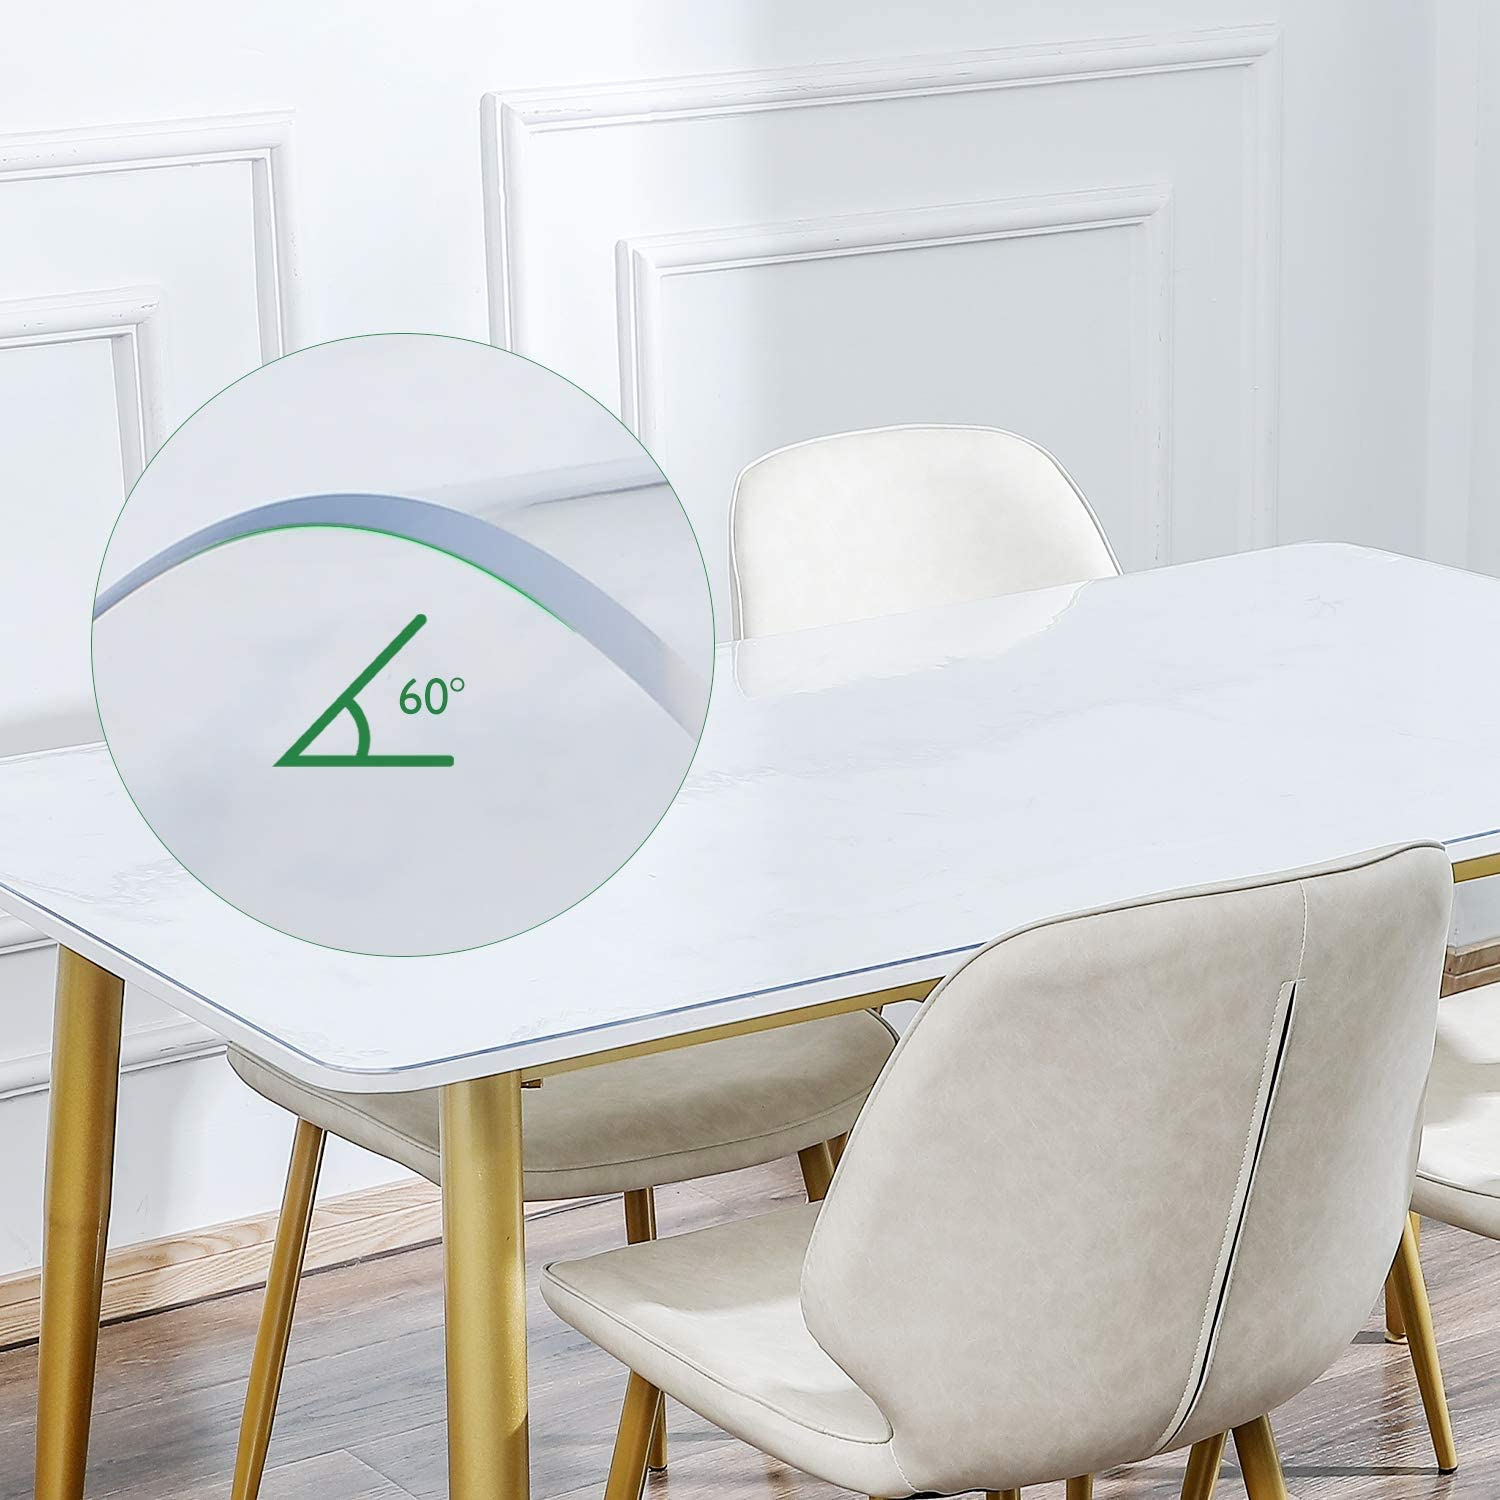 Night Stand and Dresser Tables 12/×12 Inch Multi-Size Optional KSHG Upgrade Odorless Table Cover Clear Plastic Desk Protector 1.5mm Thickness 2Pcs Waterproof Tablecloth Desk Pad for End Table